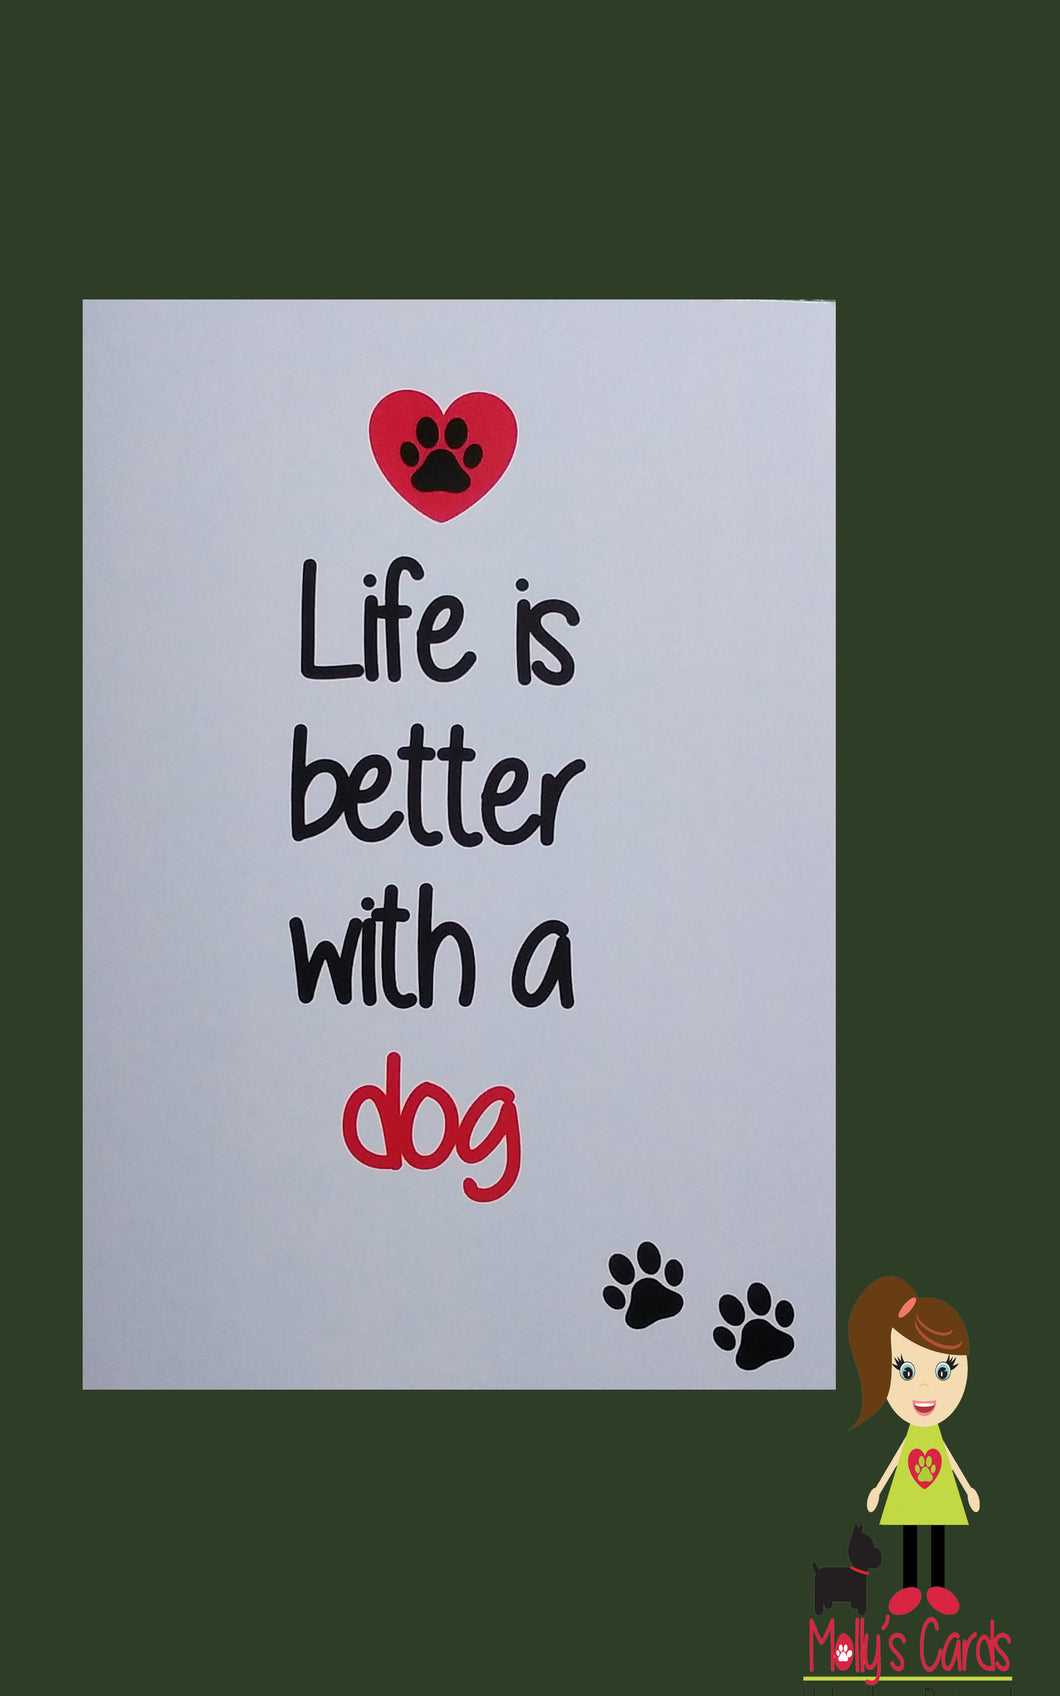 Life is better with a dog card